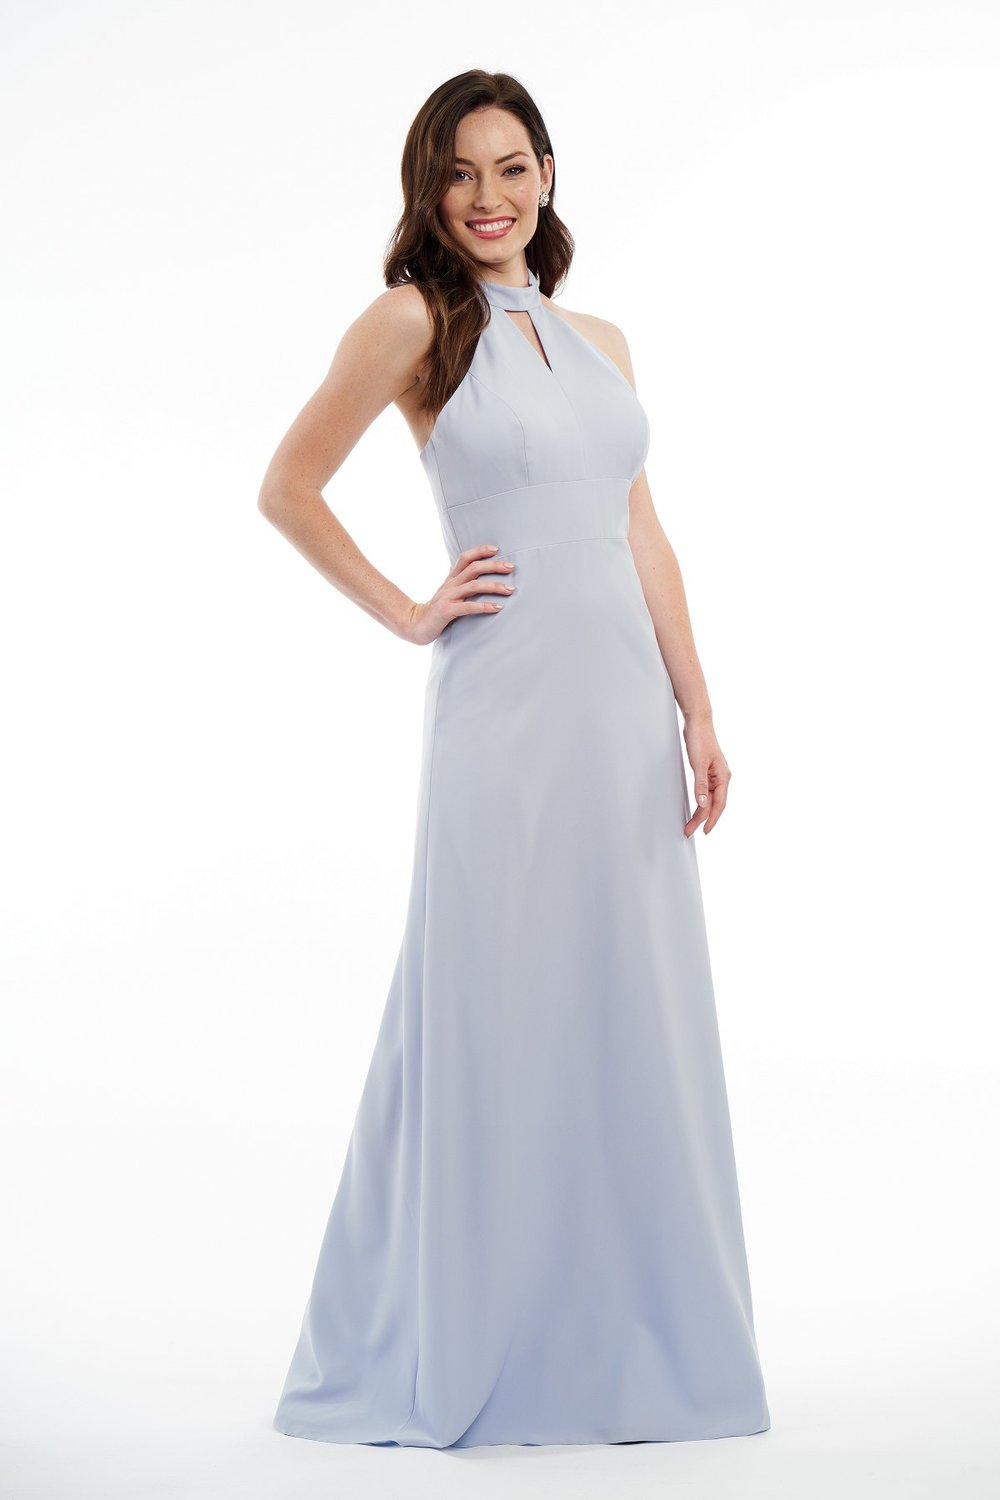 P216015 -  Pretty soft crepe floor length bridesmaid dress with a keyhole high neckline and A-line skirt to complete the simple look.    Available in 12 colors